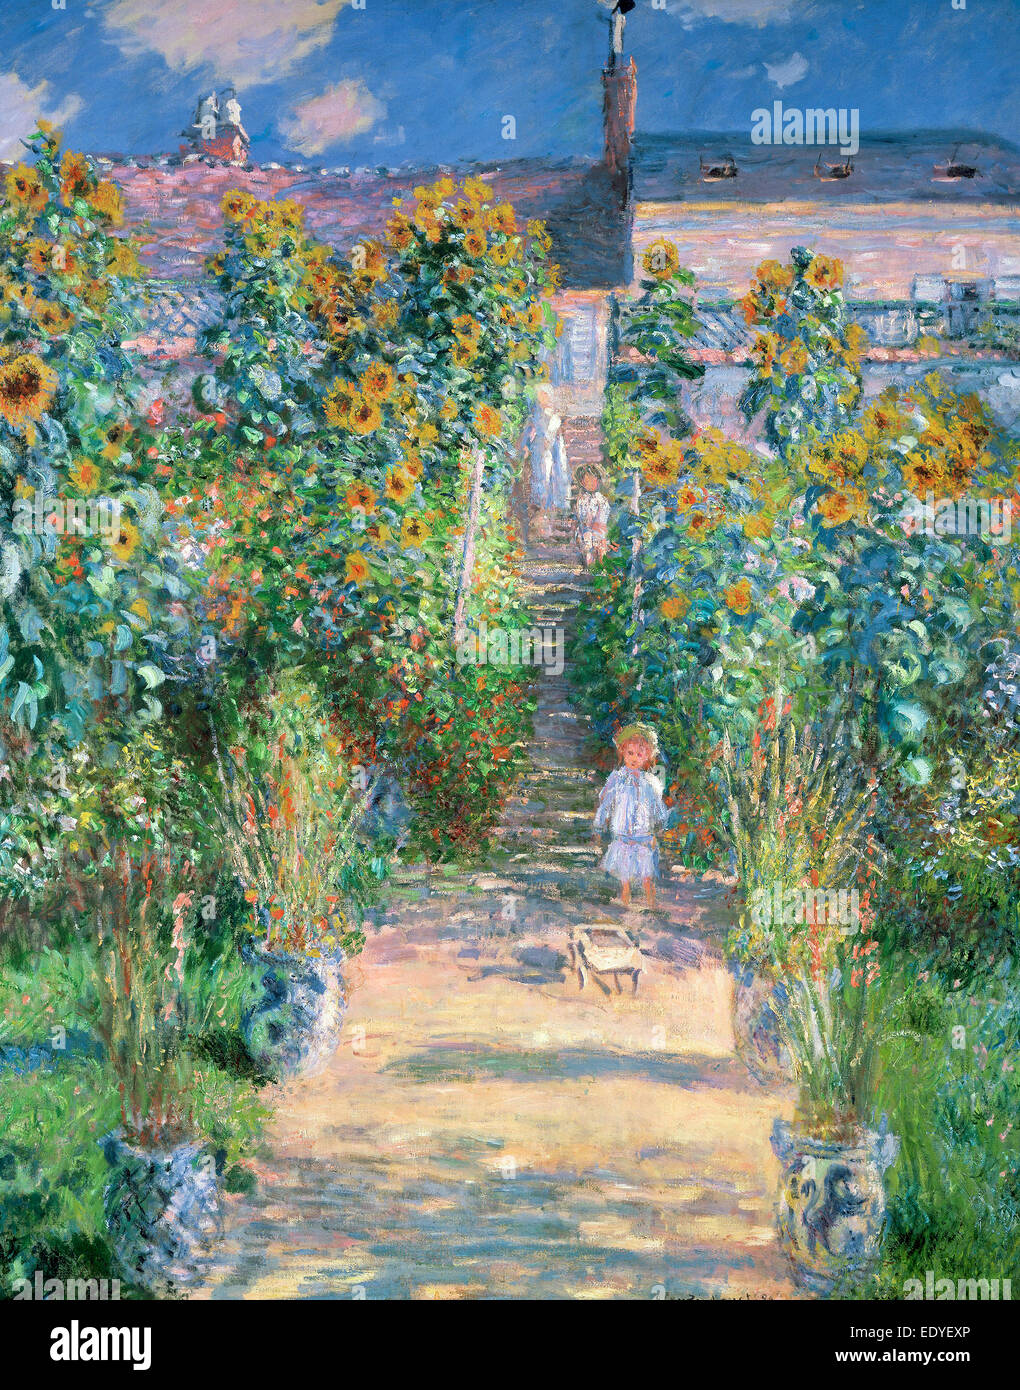 Claude Monet, The Artist's Garden at Vétheuil, French, 1840 - 1926, 1880, oil on canvas - Stock Image